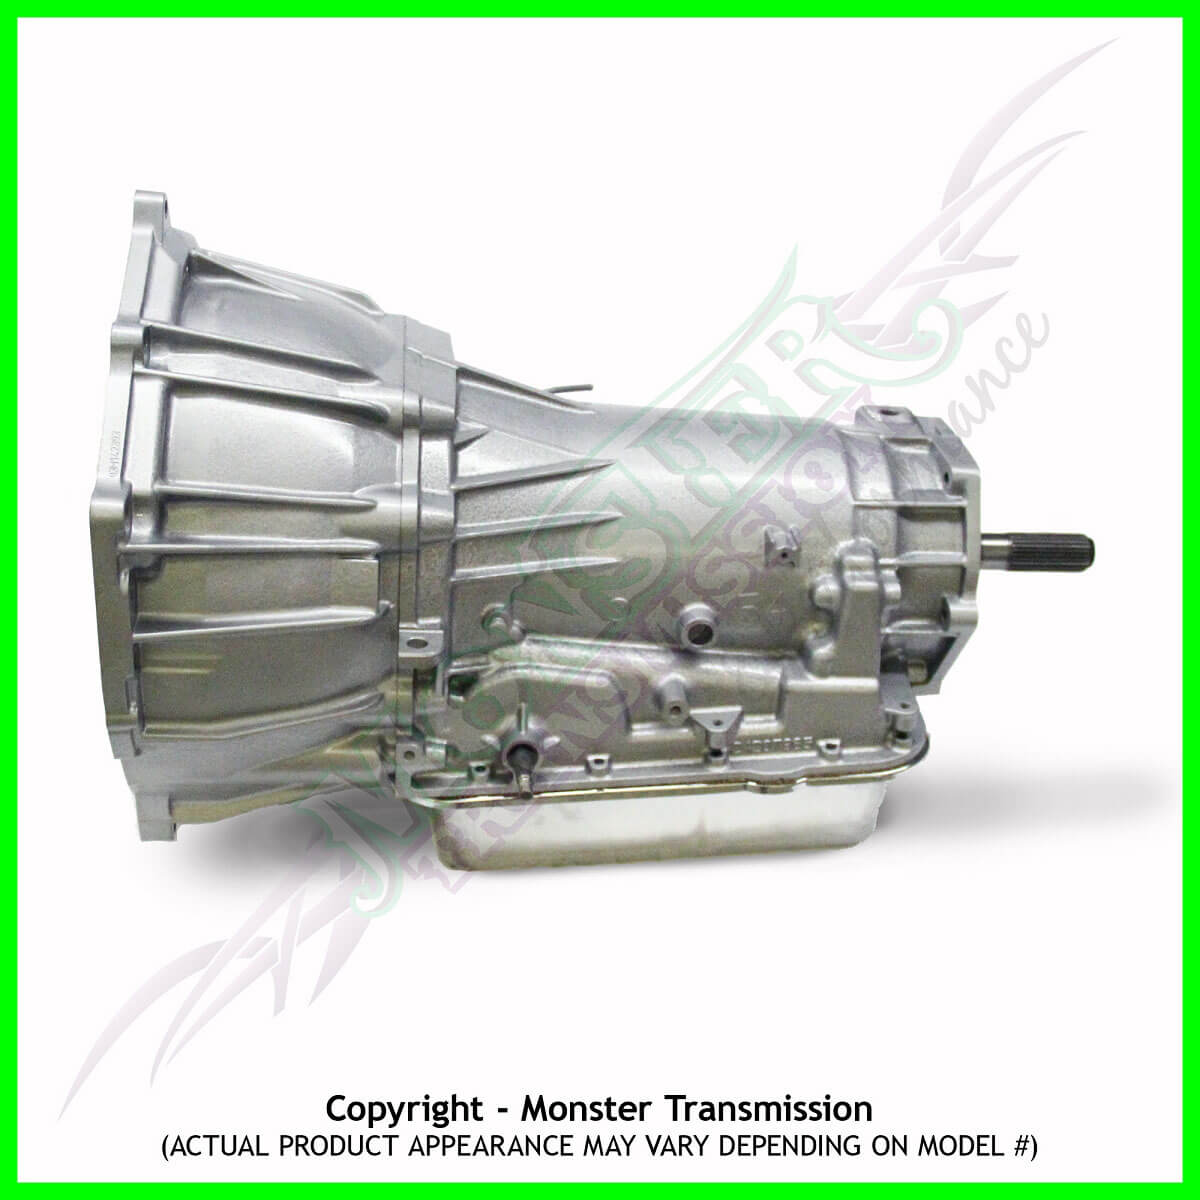 4L60E/4L65E Transmission Heavy Duty 4x4